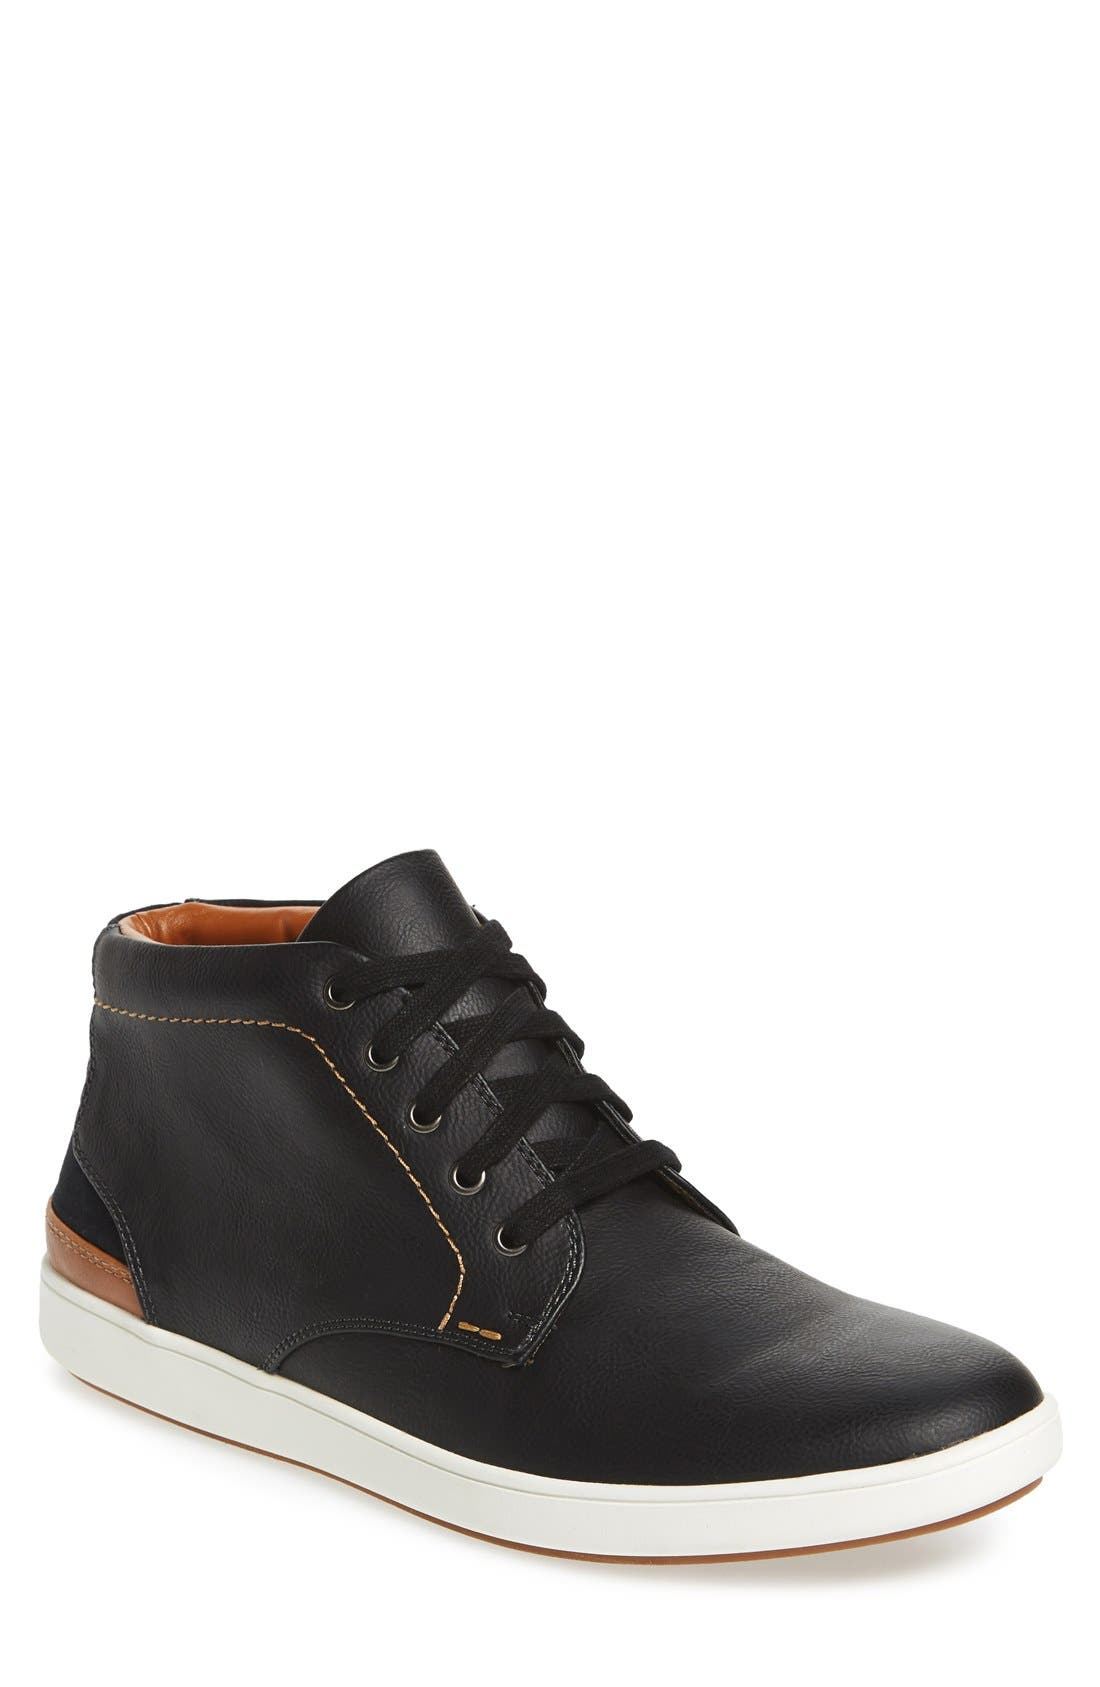 Freedomm Sneaker,                         Main,                         color, Black